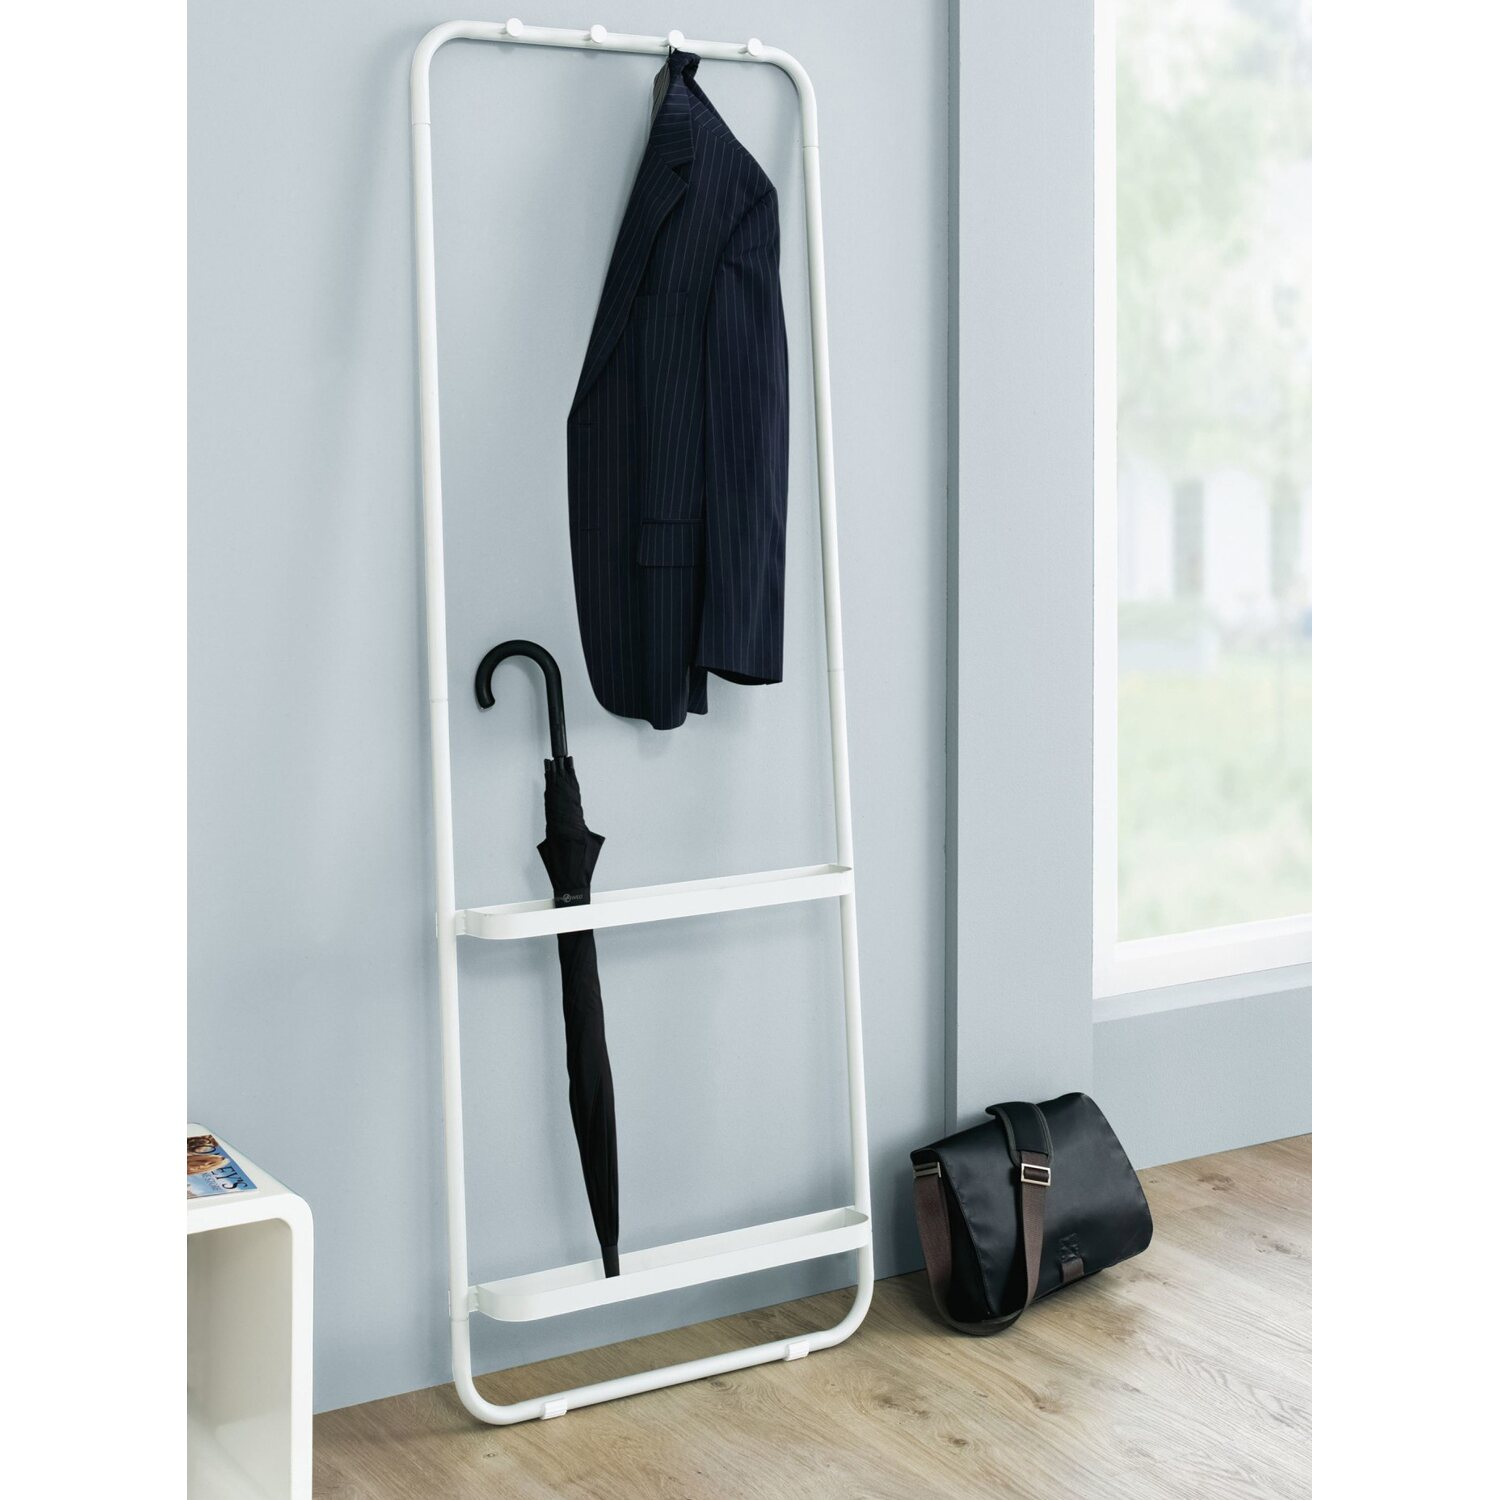 best of home Best of home Garderobe 178 cm x 63 cm x 10 cm Weiß